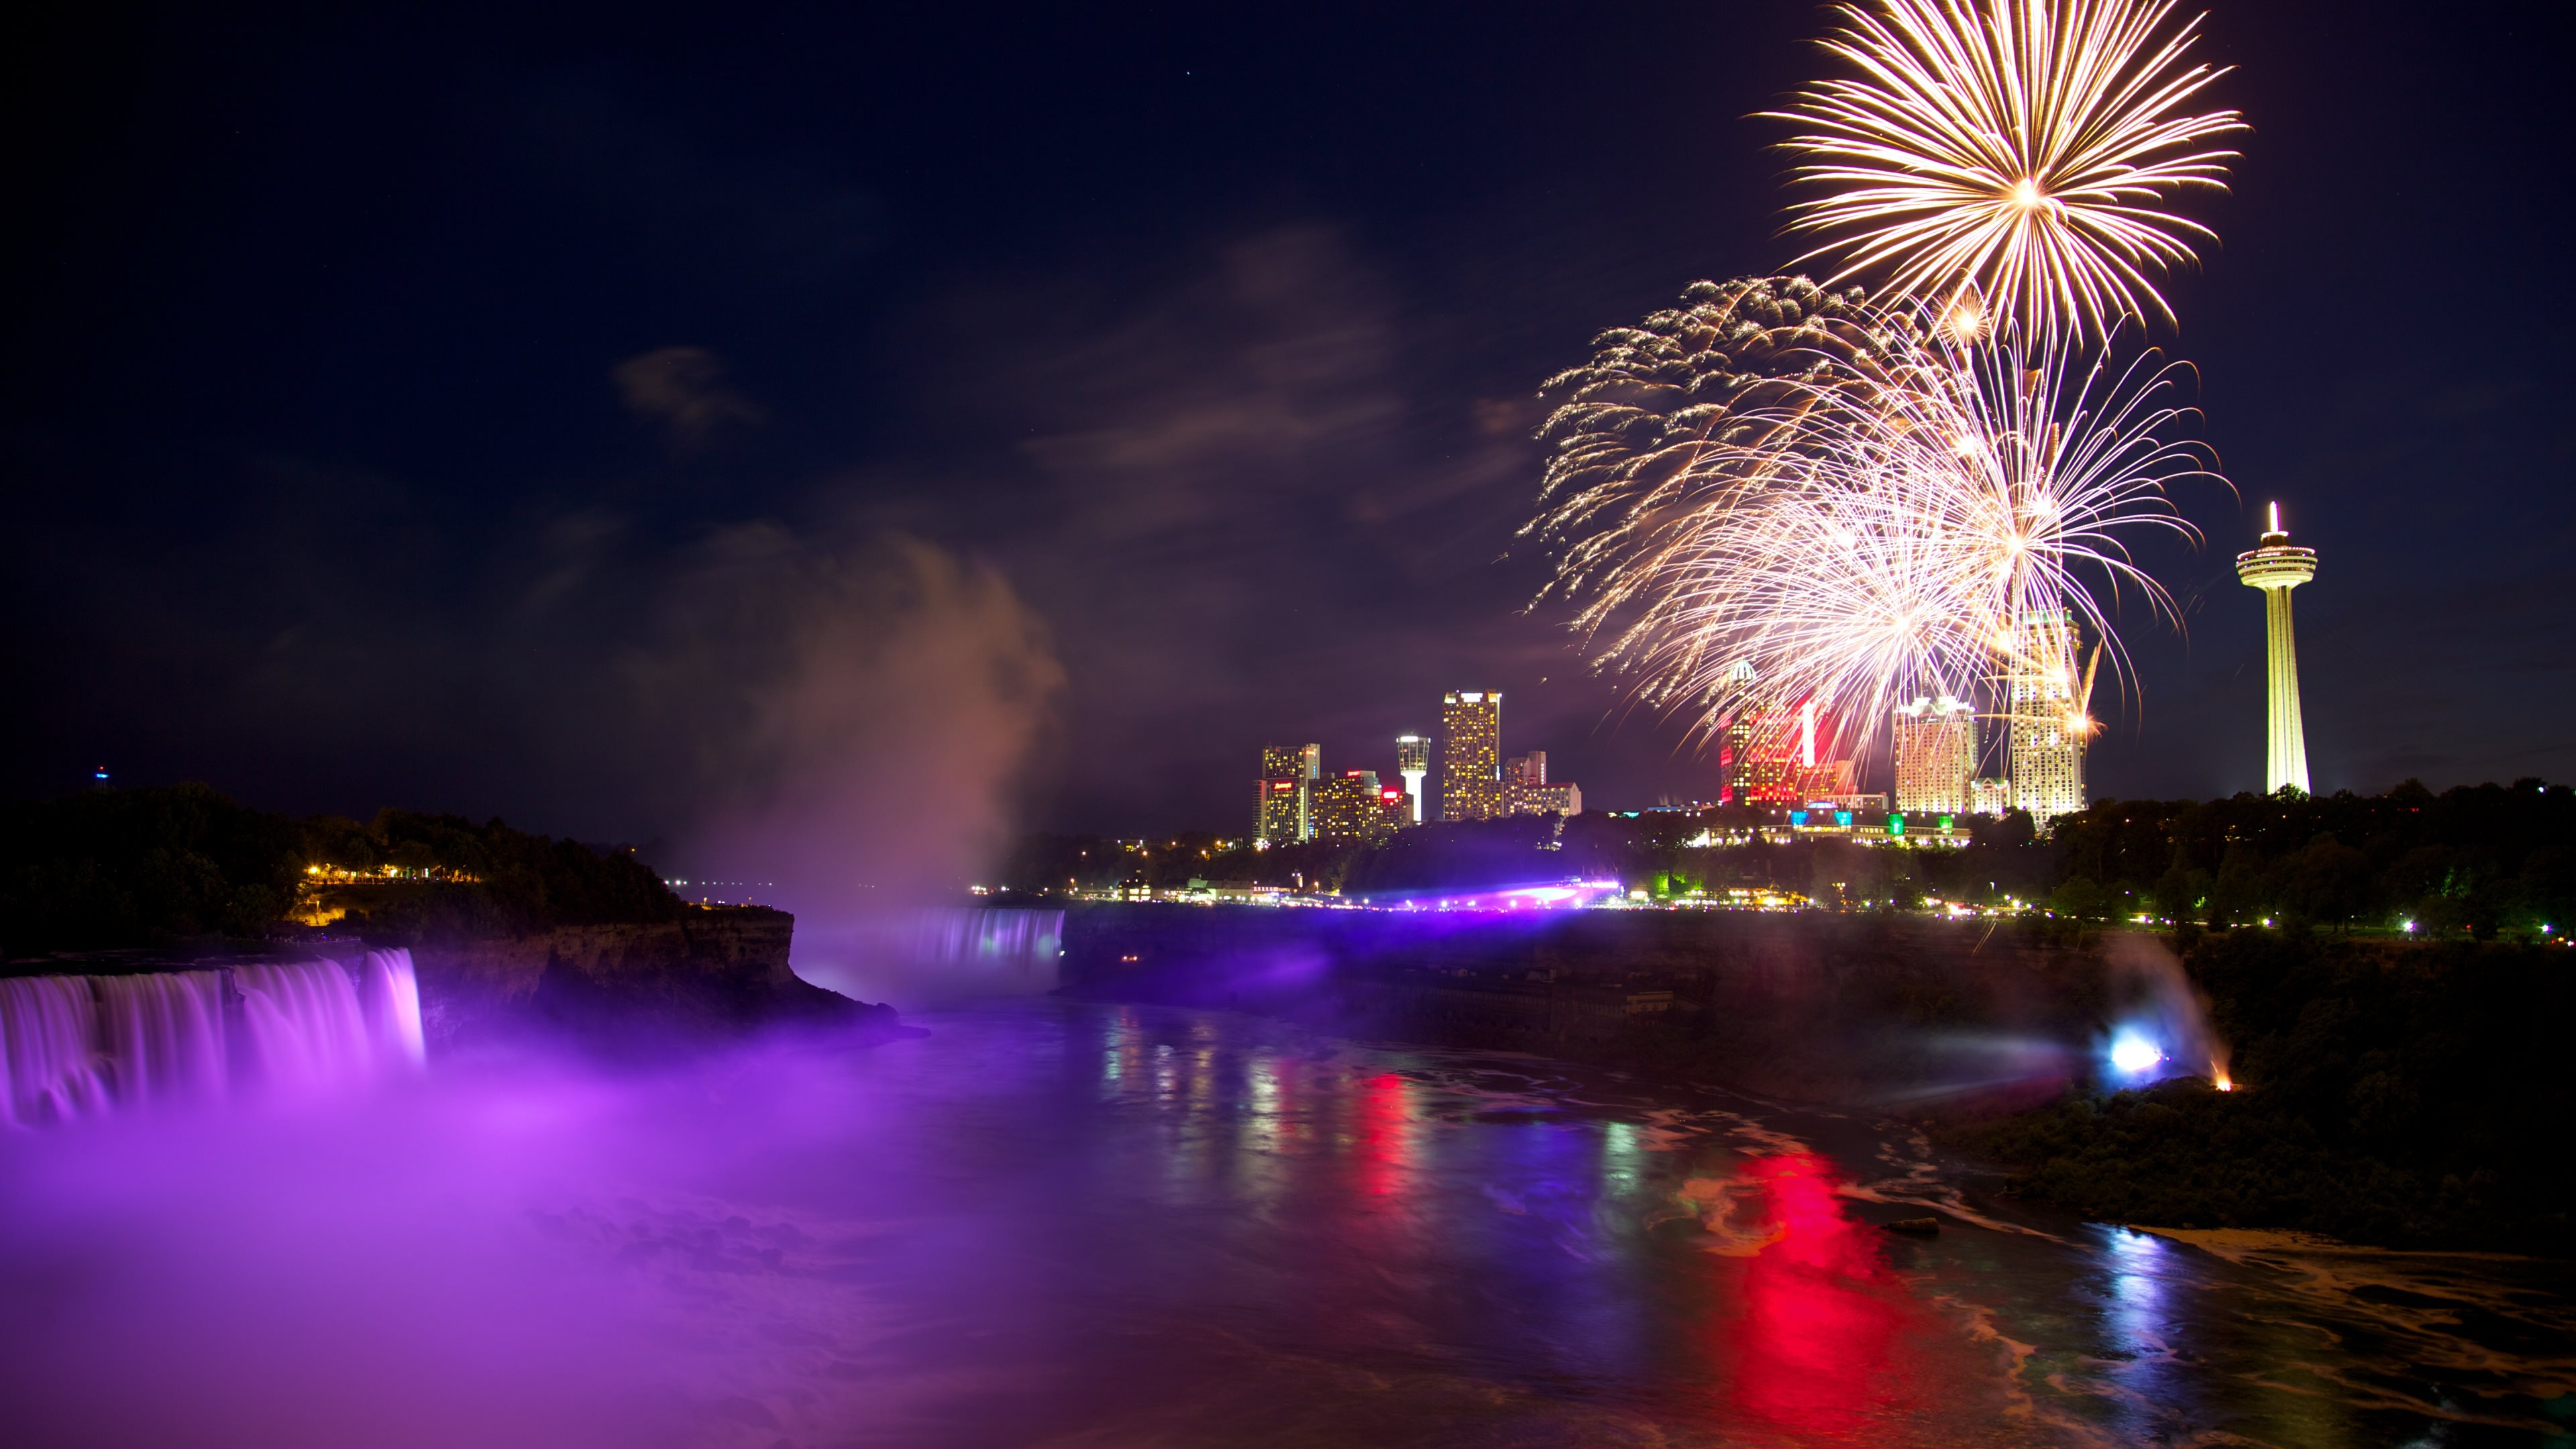 Niagara Falls Hd 1080p Wallpapers Photography Fireworks Night Wallpaper